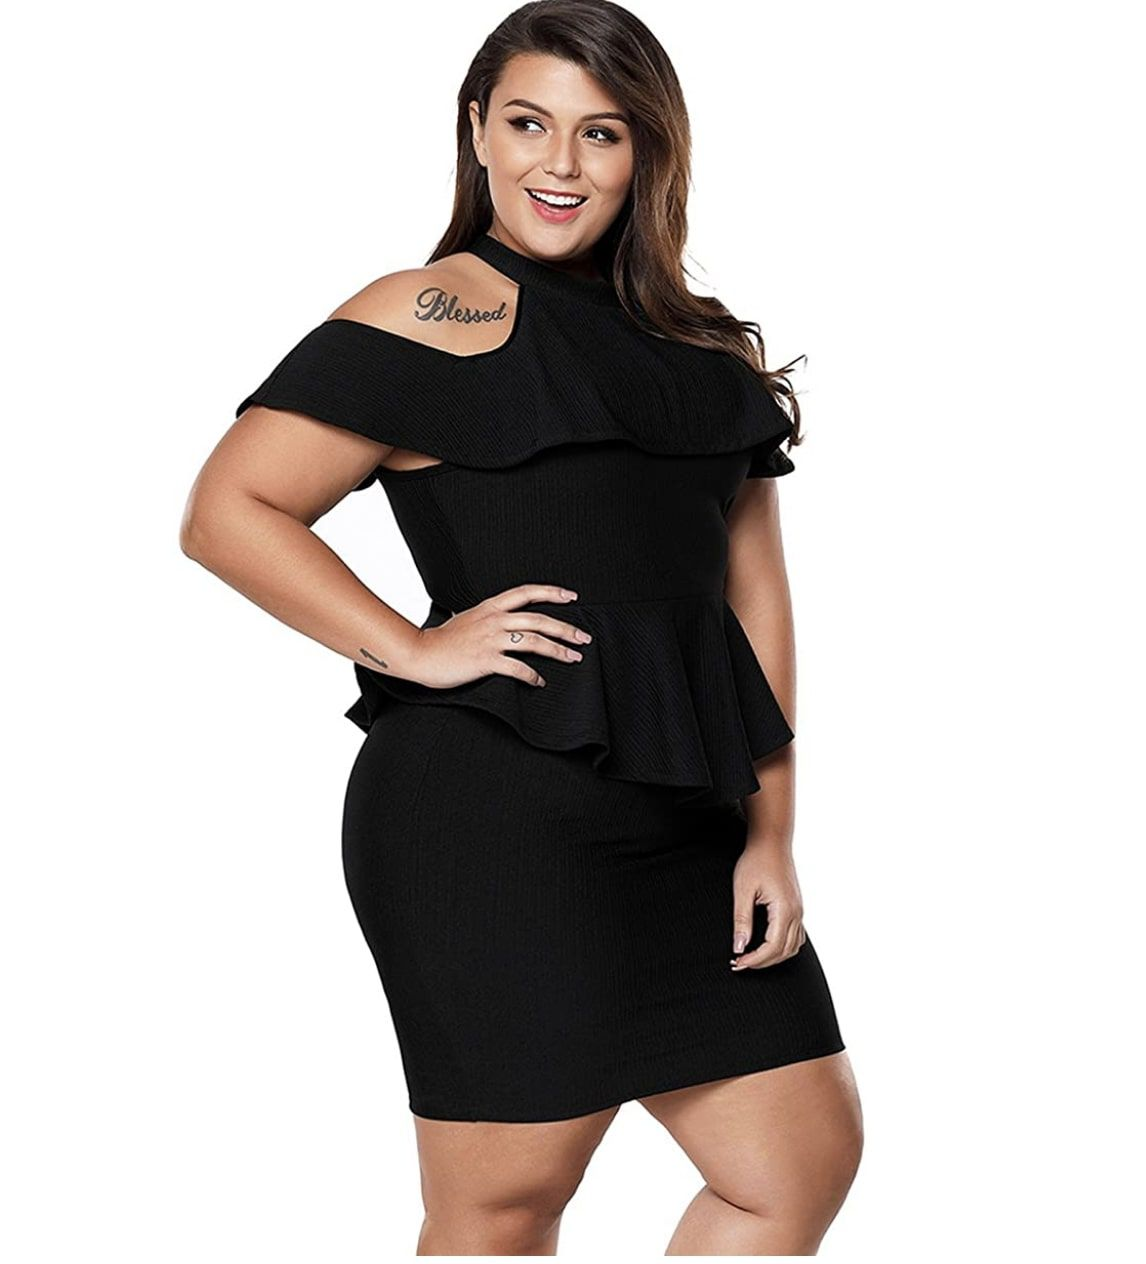 Style B07BPSZ3DL Lalagen Black Size 20 Homecoming Mini Tall Height Wedding Guest Cocktail Dress on Queenly